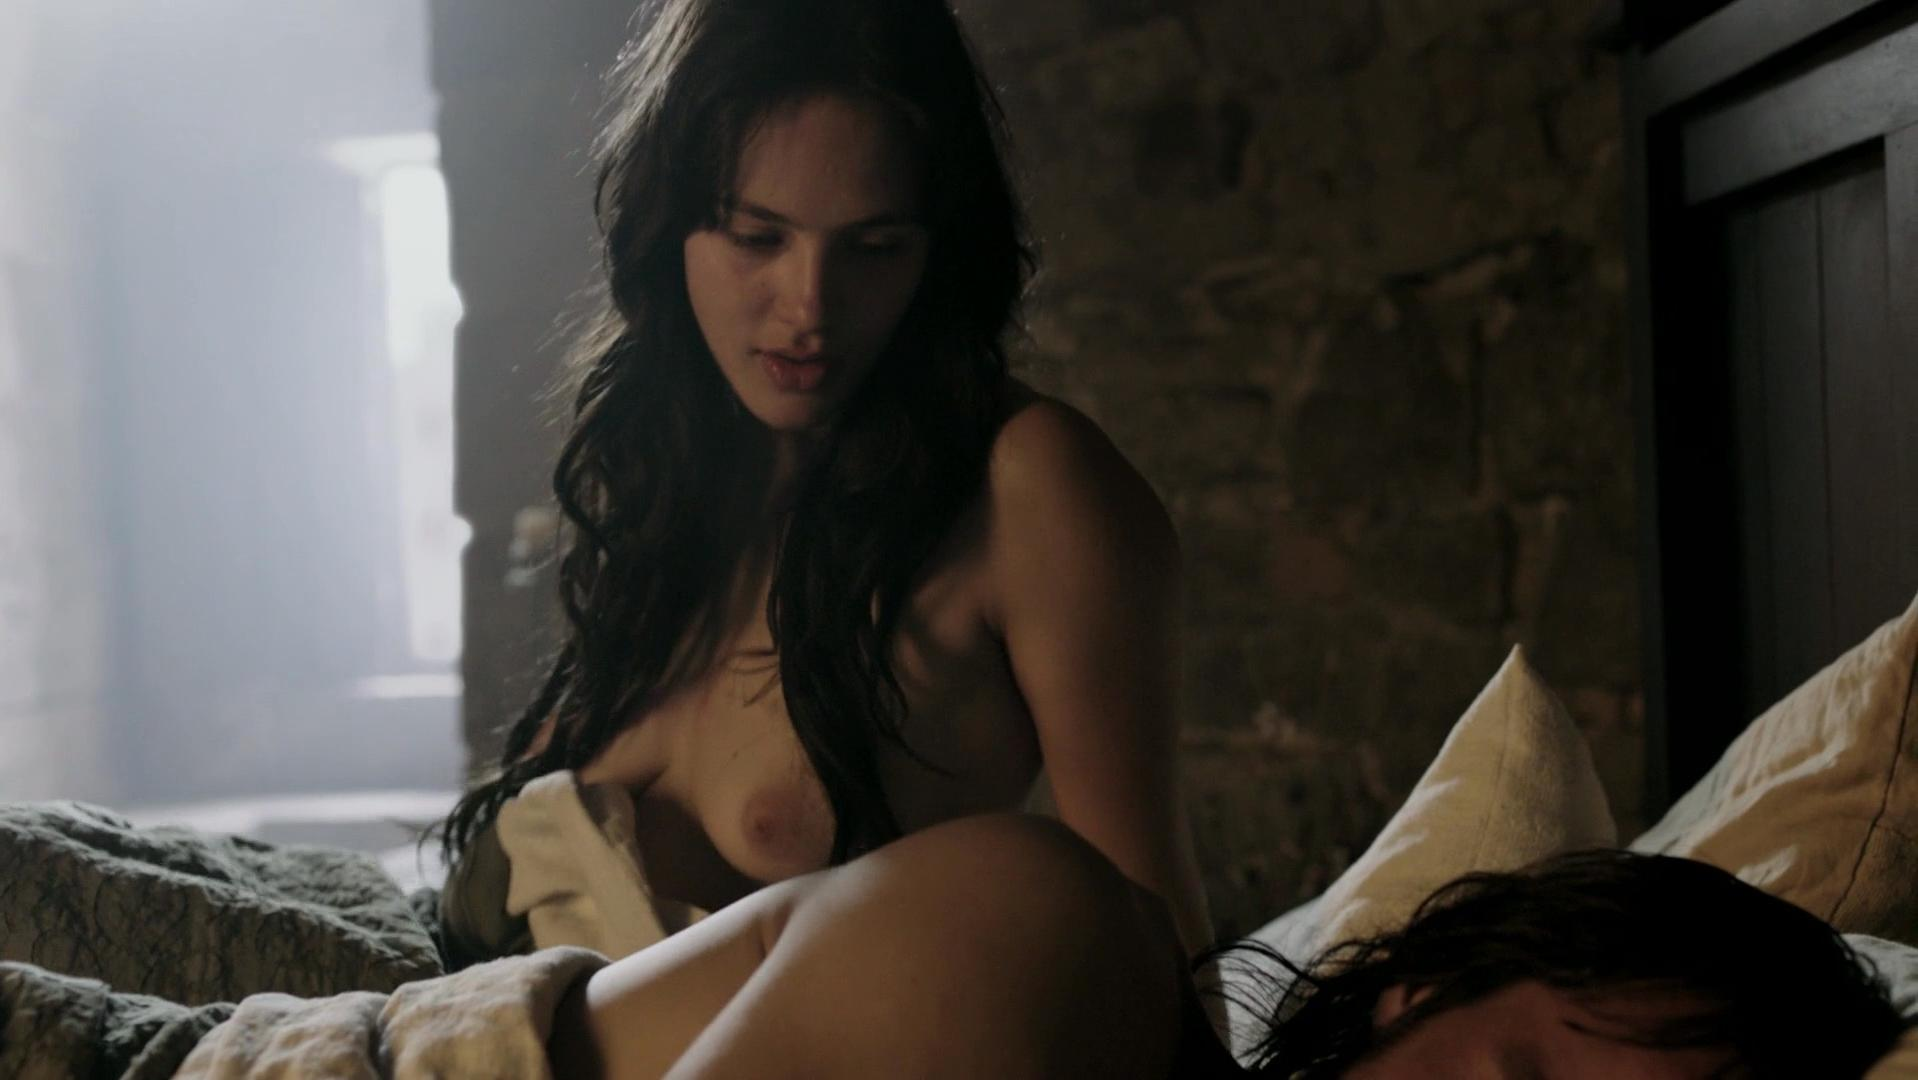 Sorry, naked jessica brown findlay nude opinion you